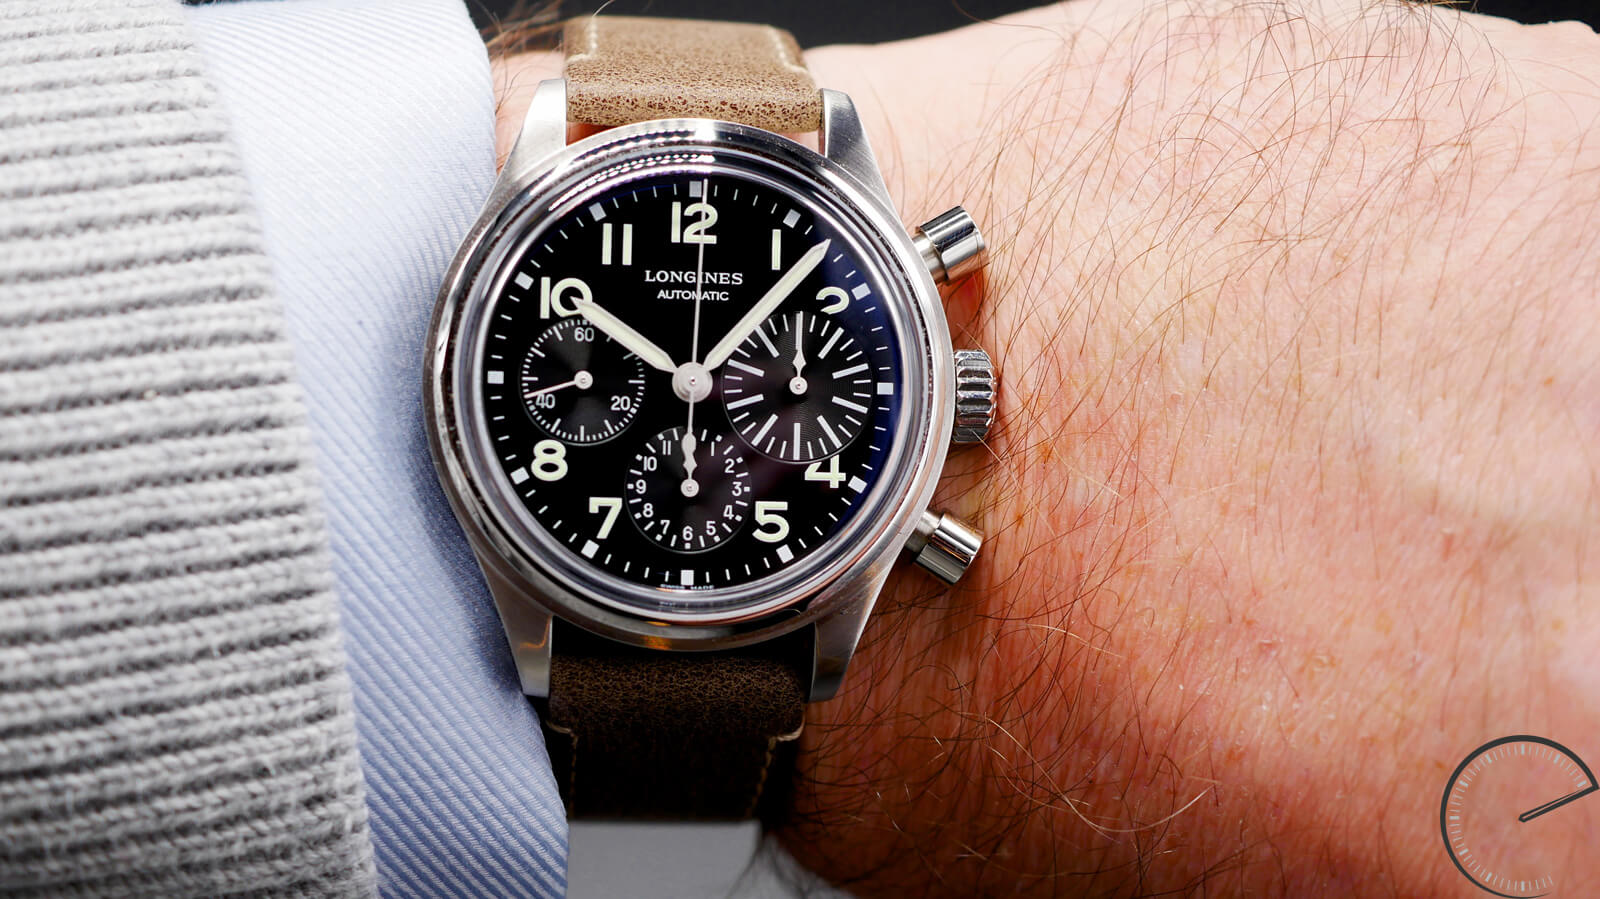 Longines Avigation Big Eye - column-wheel chronograph featuring caliber LM688 movement